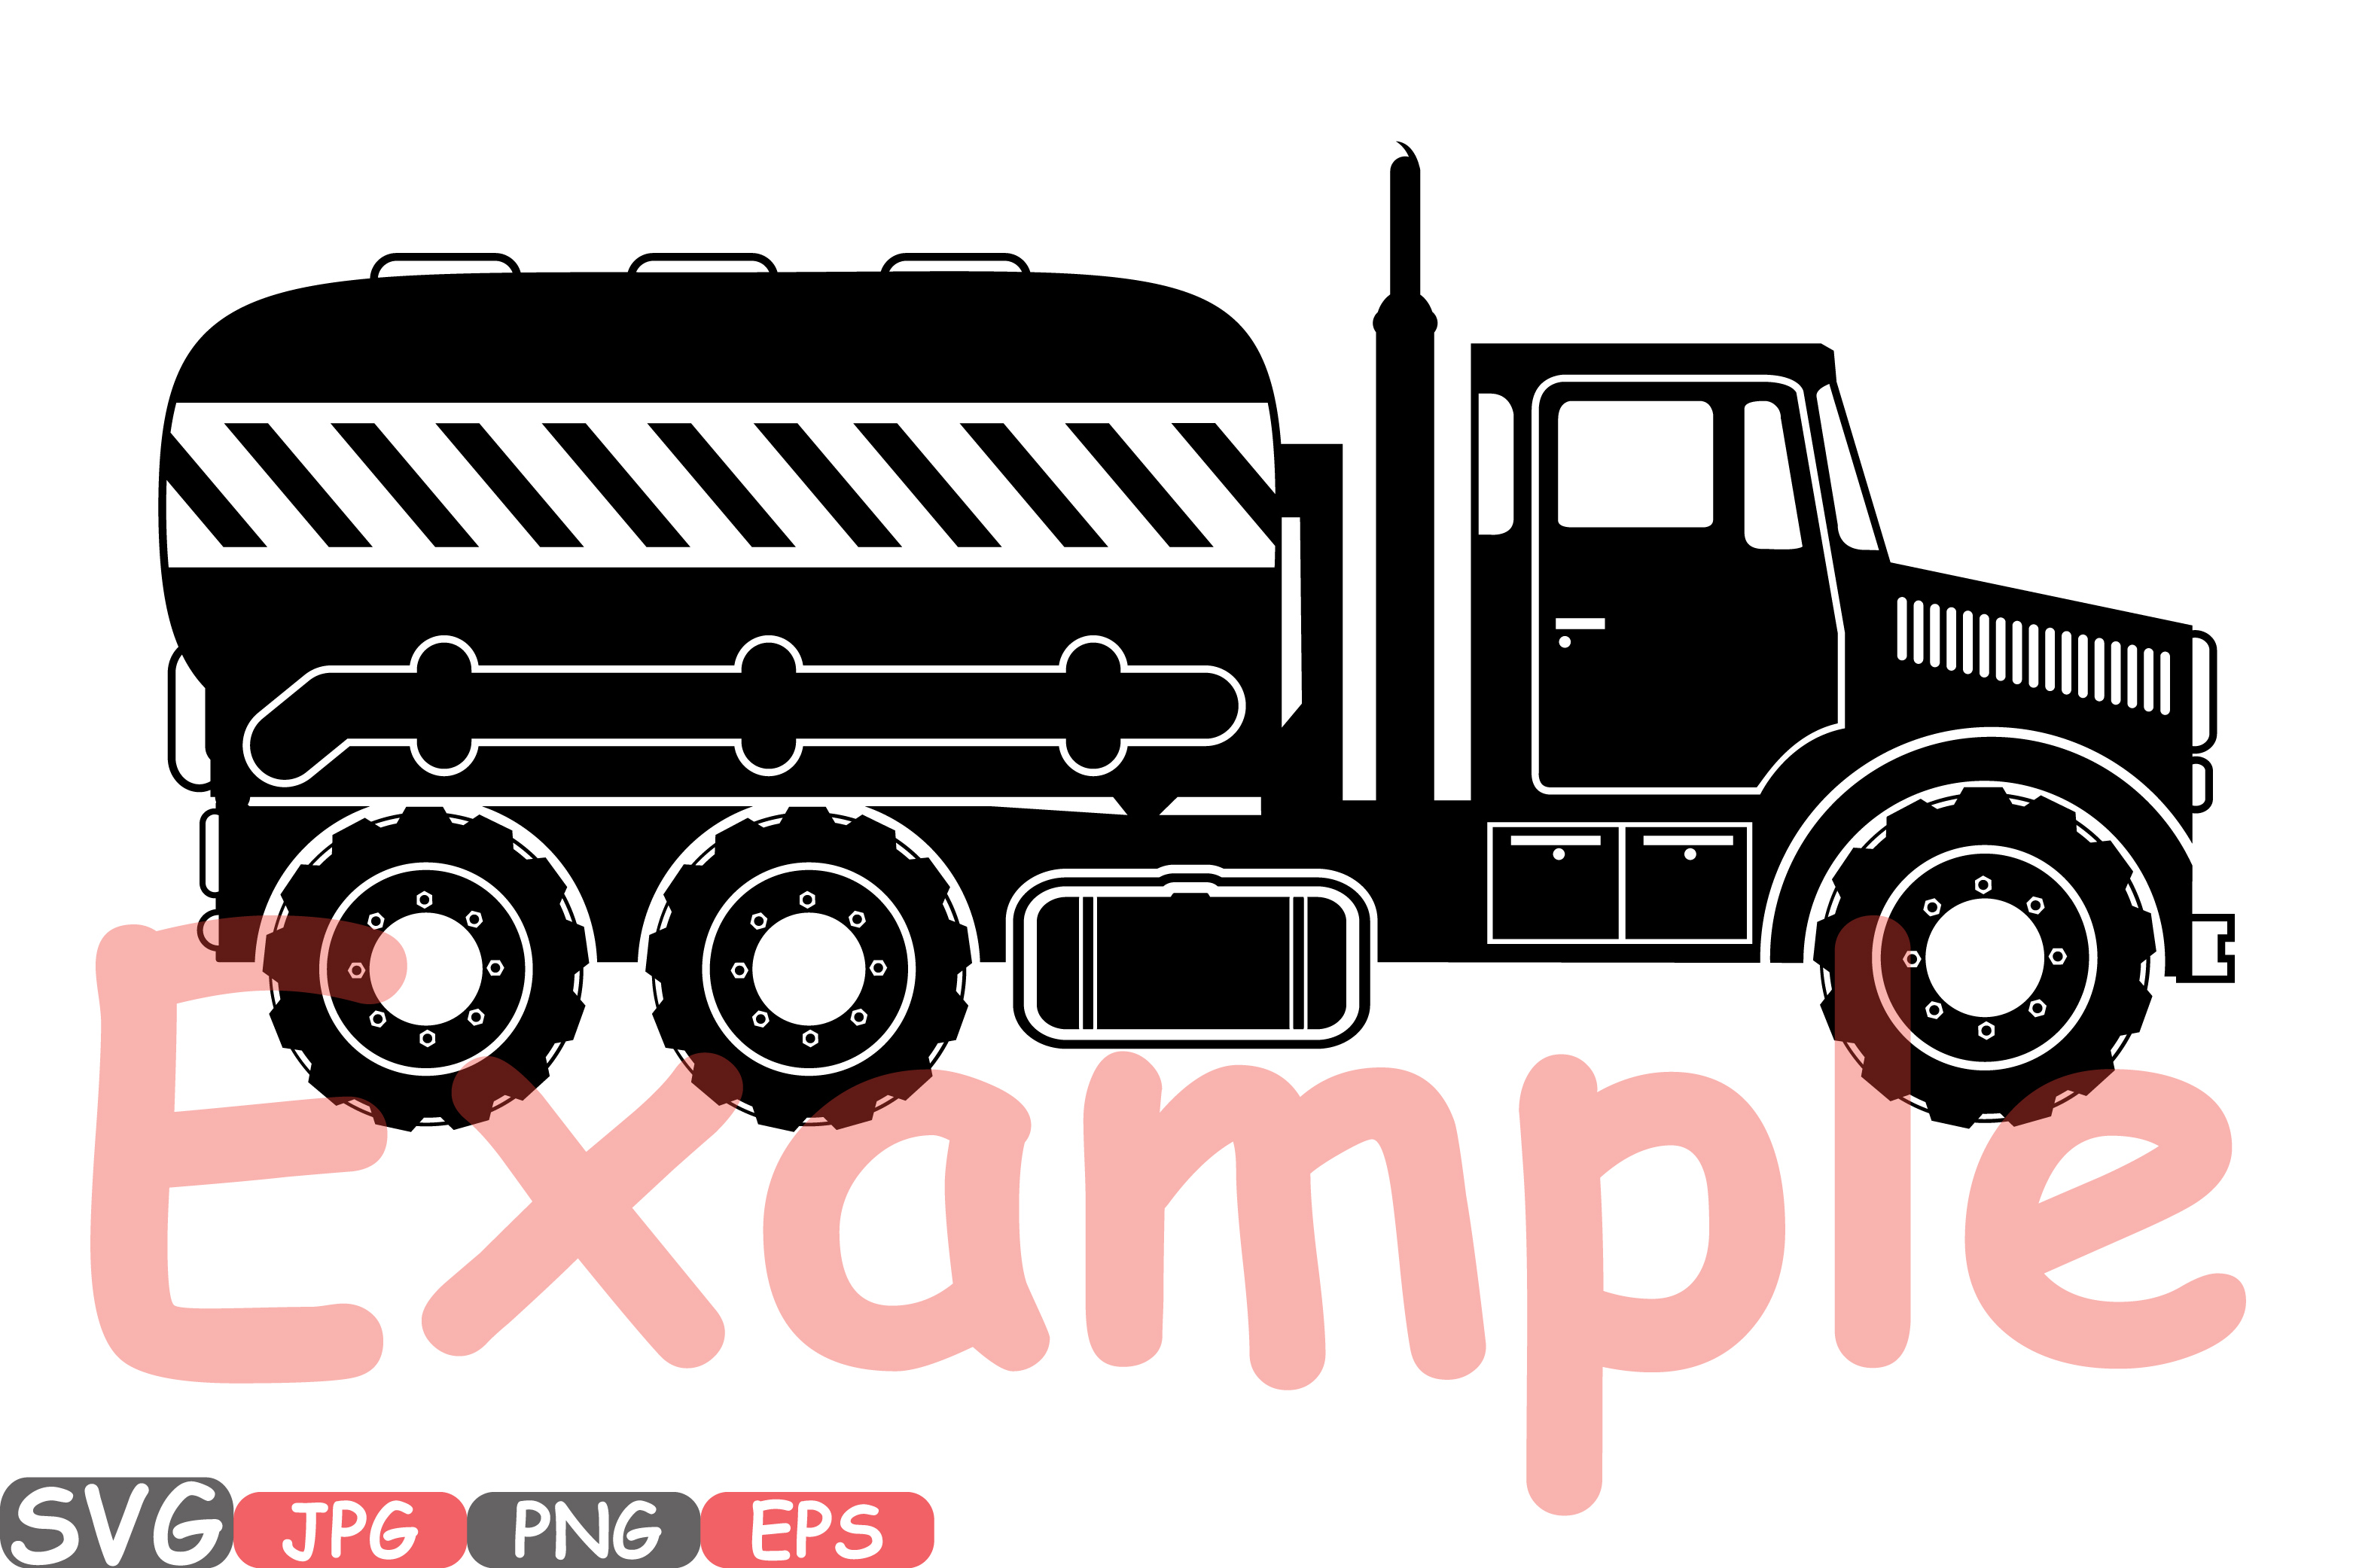 3125x2083 Construction Machines Silhouette Svg Fi Design Bundles